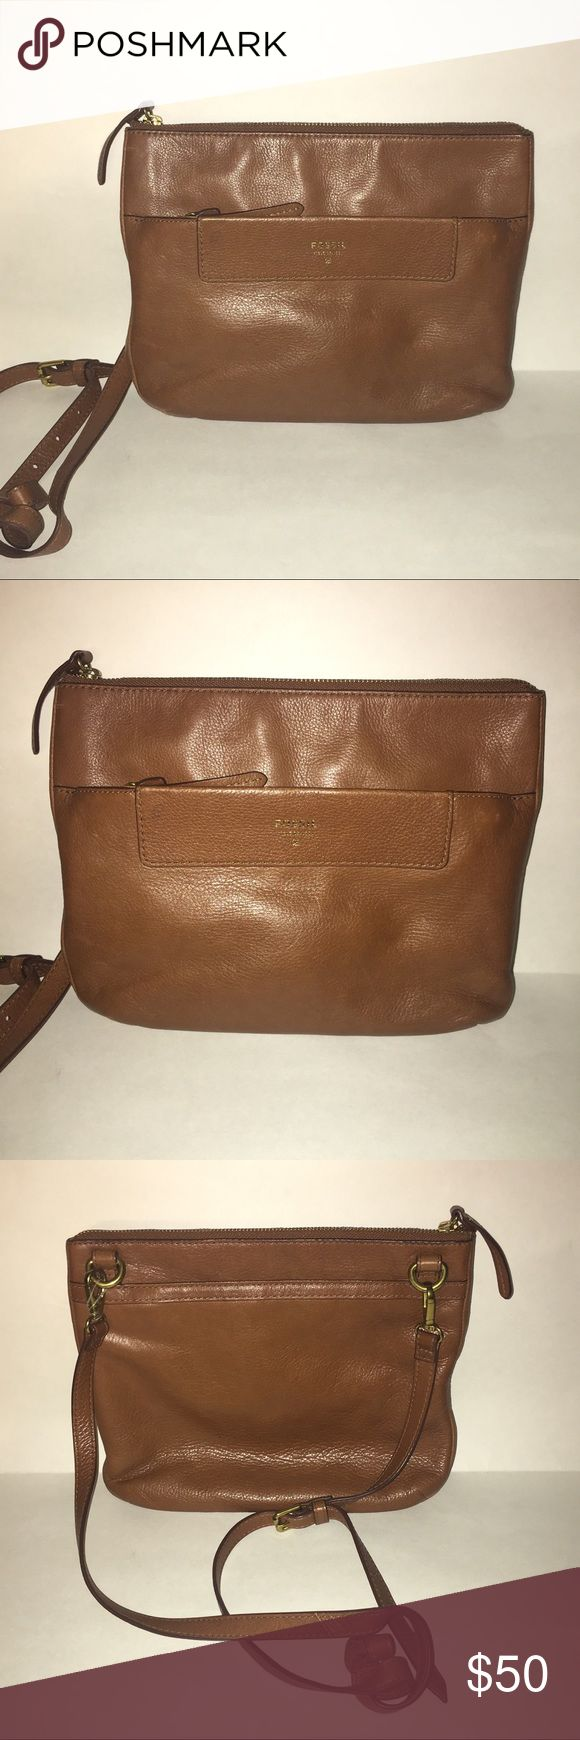 Fossil Brown Leather Crossbody Bag Fossil Brown Leather Crossbody Bag for sale.   Good condition.   Perfect small everyday Bag!   Great leather! Great brand! Fossil Bags Crossbody Bags